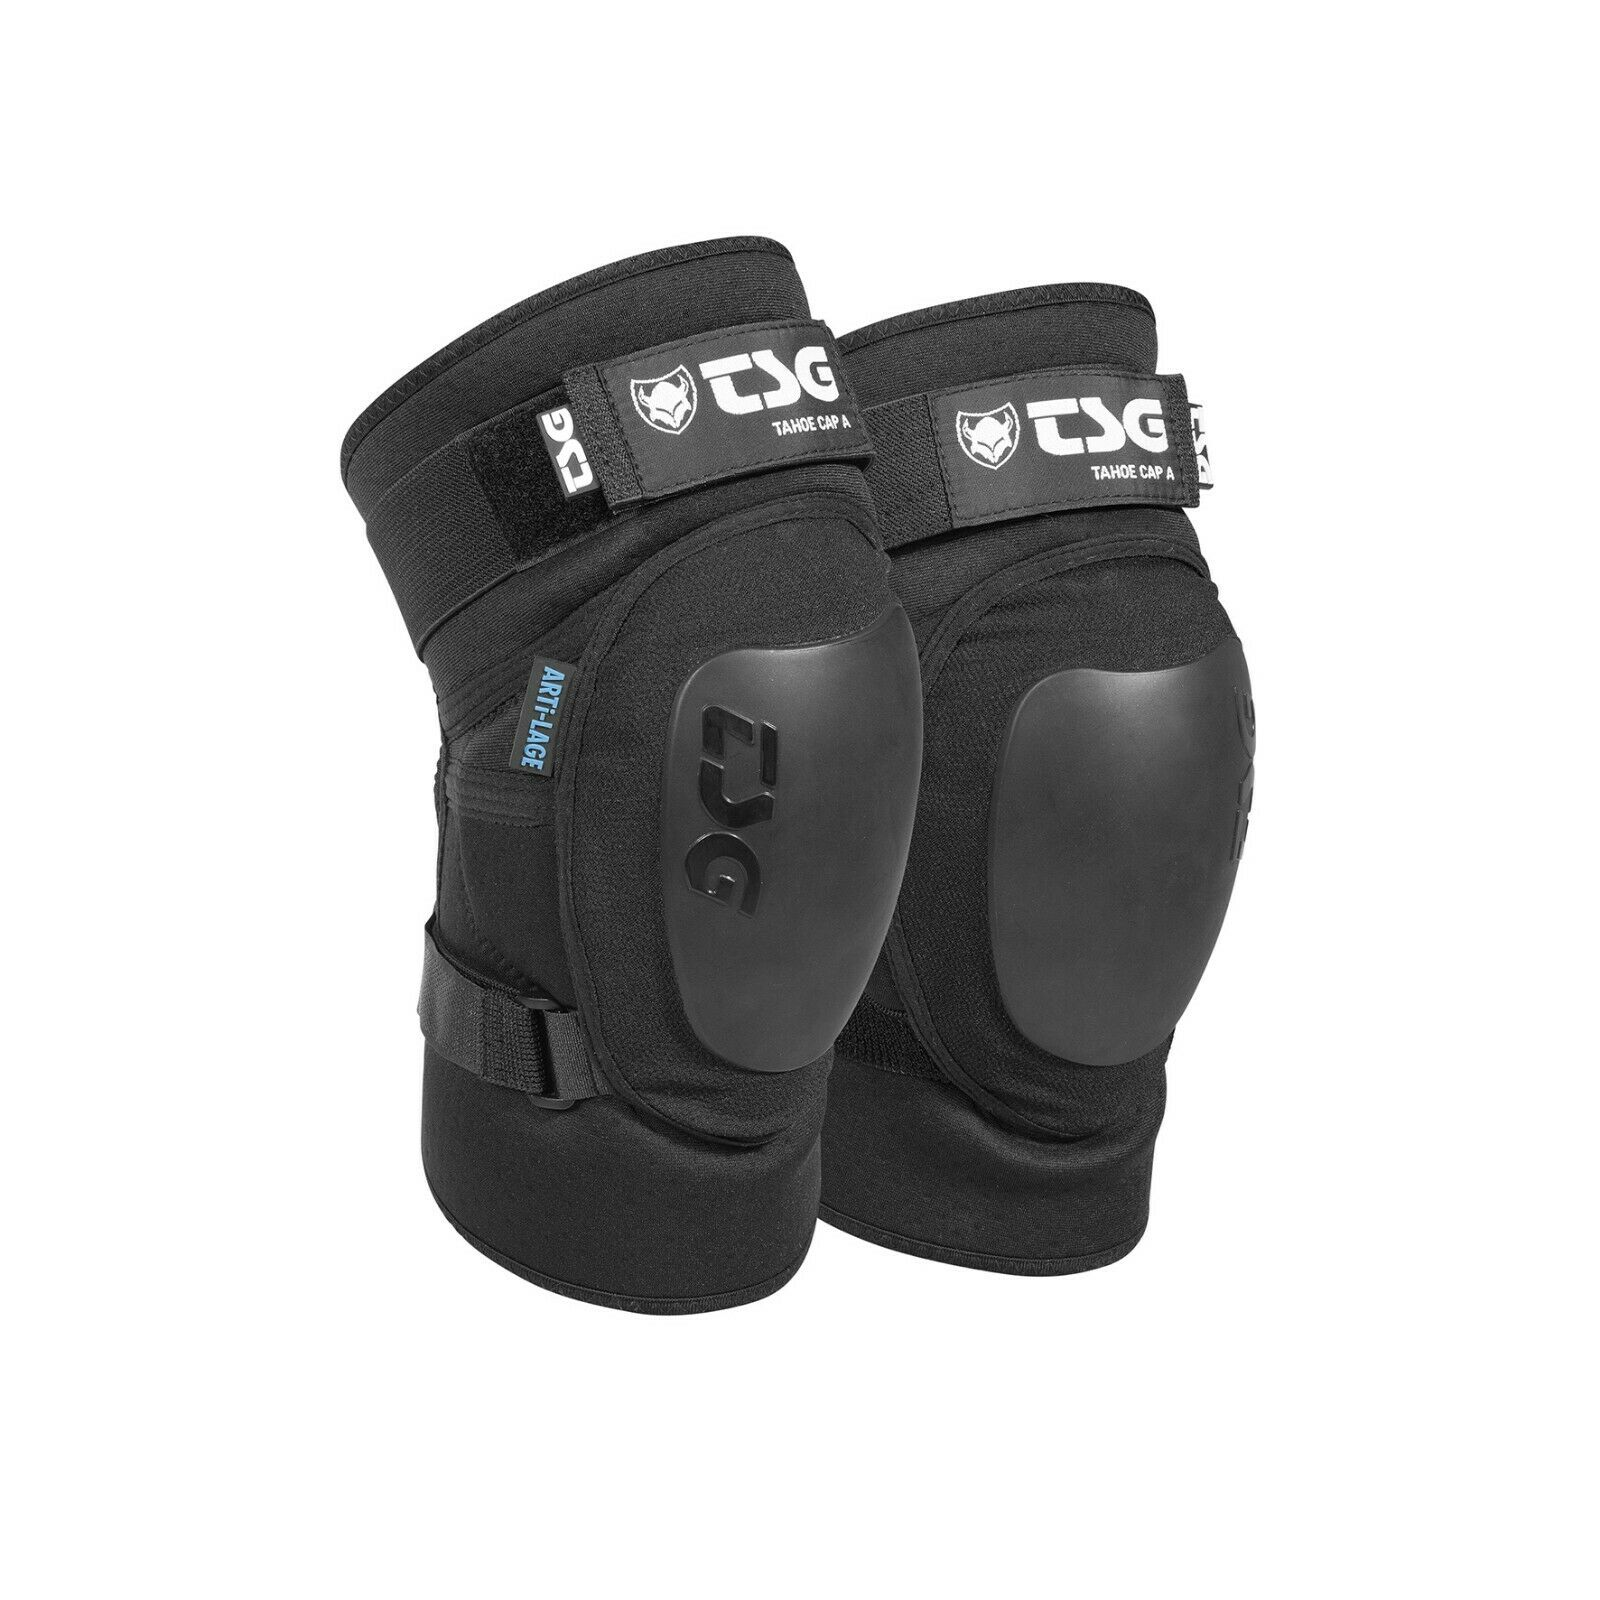 TSG - KNEEGUARD TAHOE CAP A - Professional Mountain Bike    BMX   Bicycle Pads  60% off